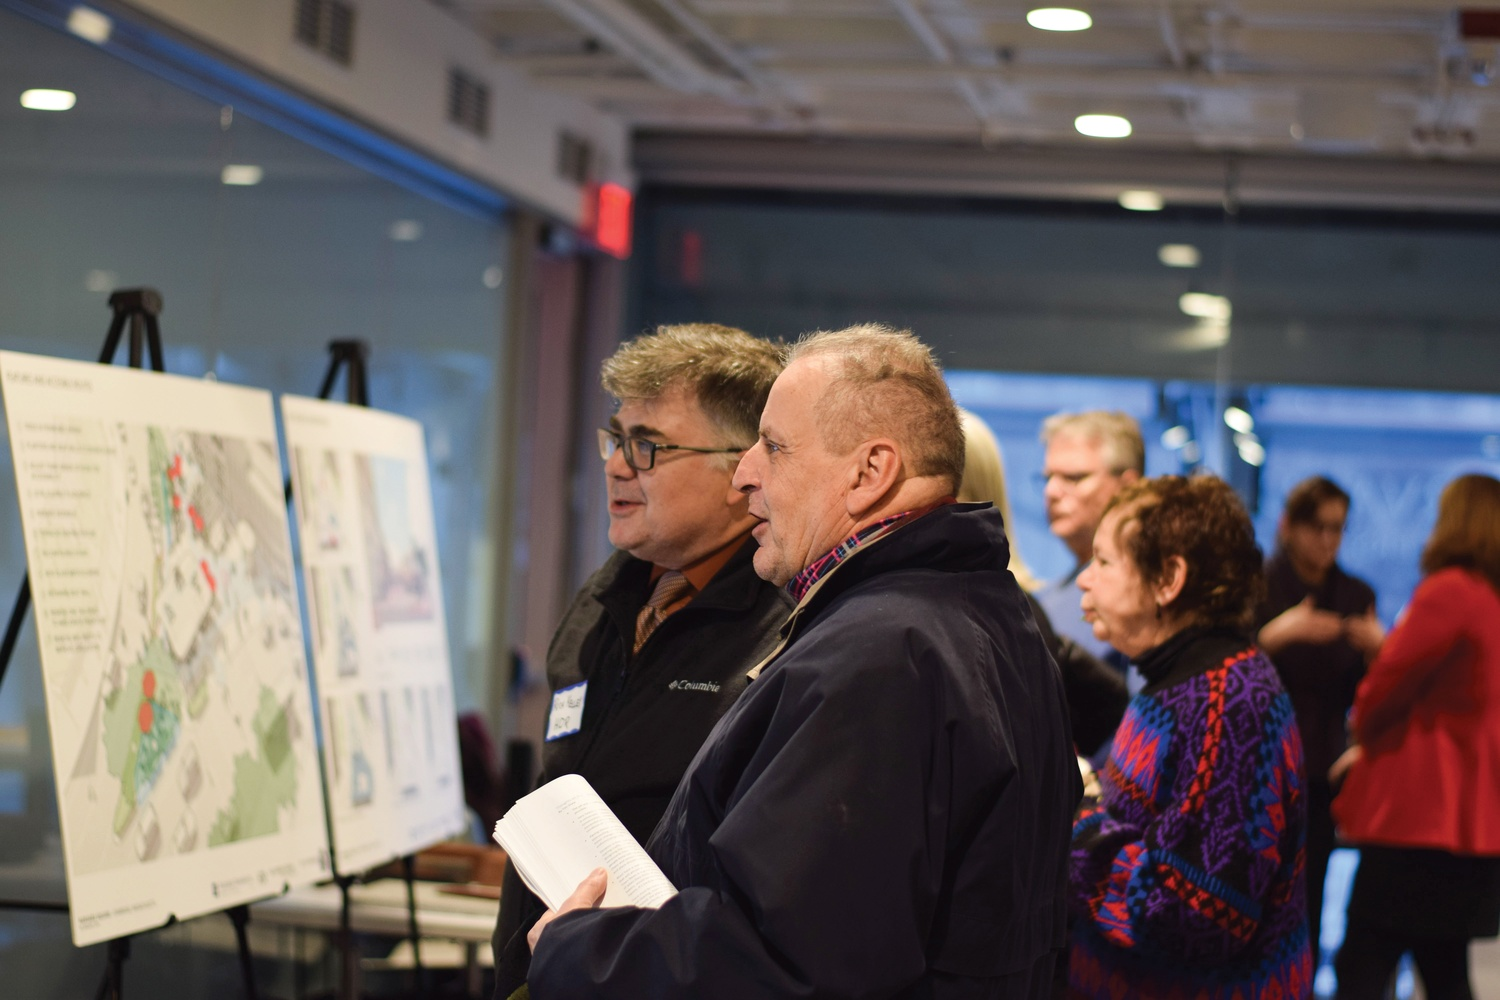 Cambridge residents gathered in the Smith Campus Center Thursday to view preliminary sketches of a redesigned Harvard Square Kiosk. The kiosk has housed a newsstand since 1984.